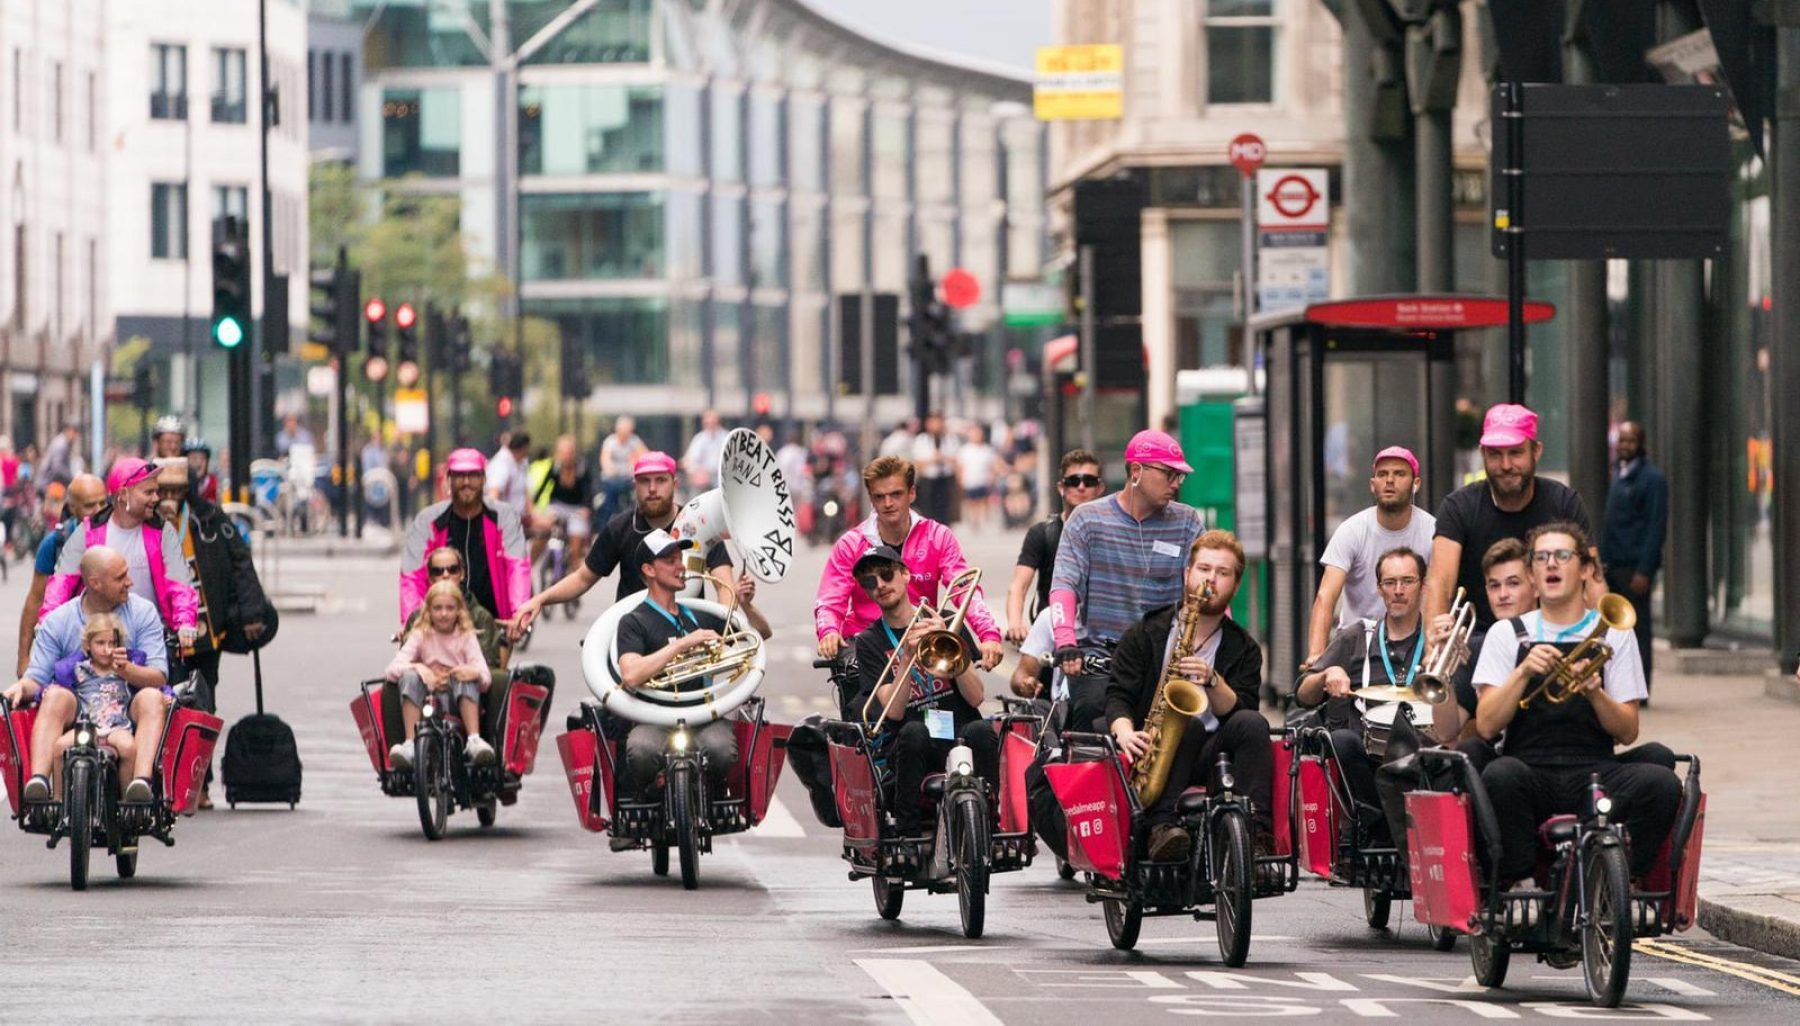 Image for What went right this week: a win for cargo bikes, plus more positive news